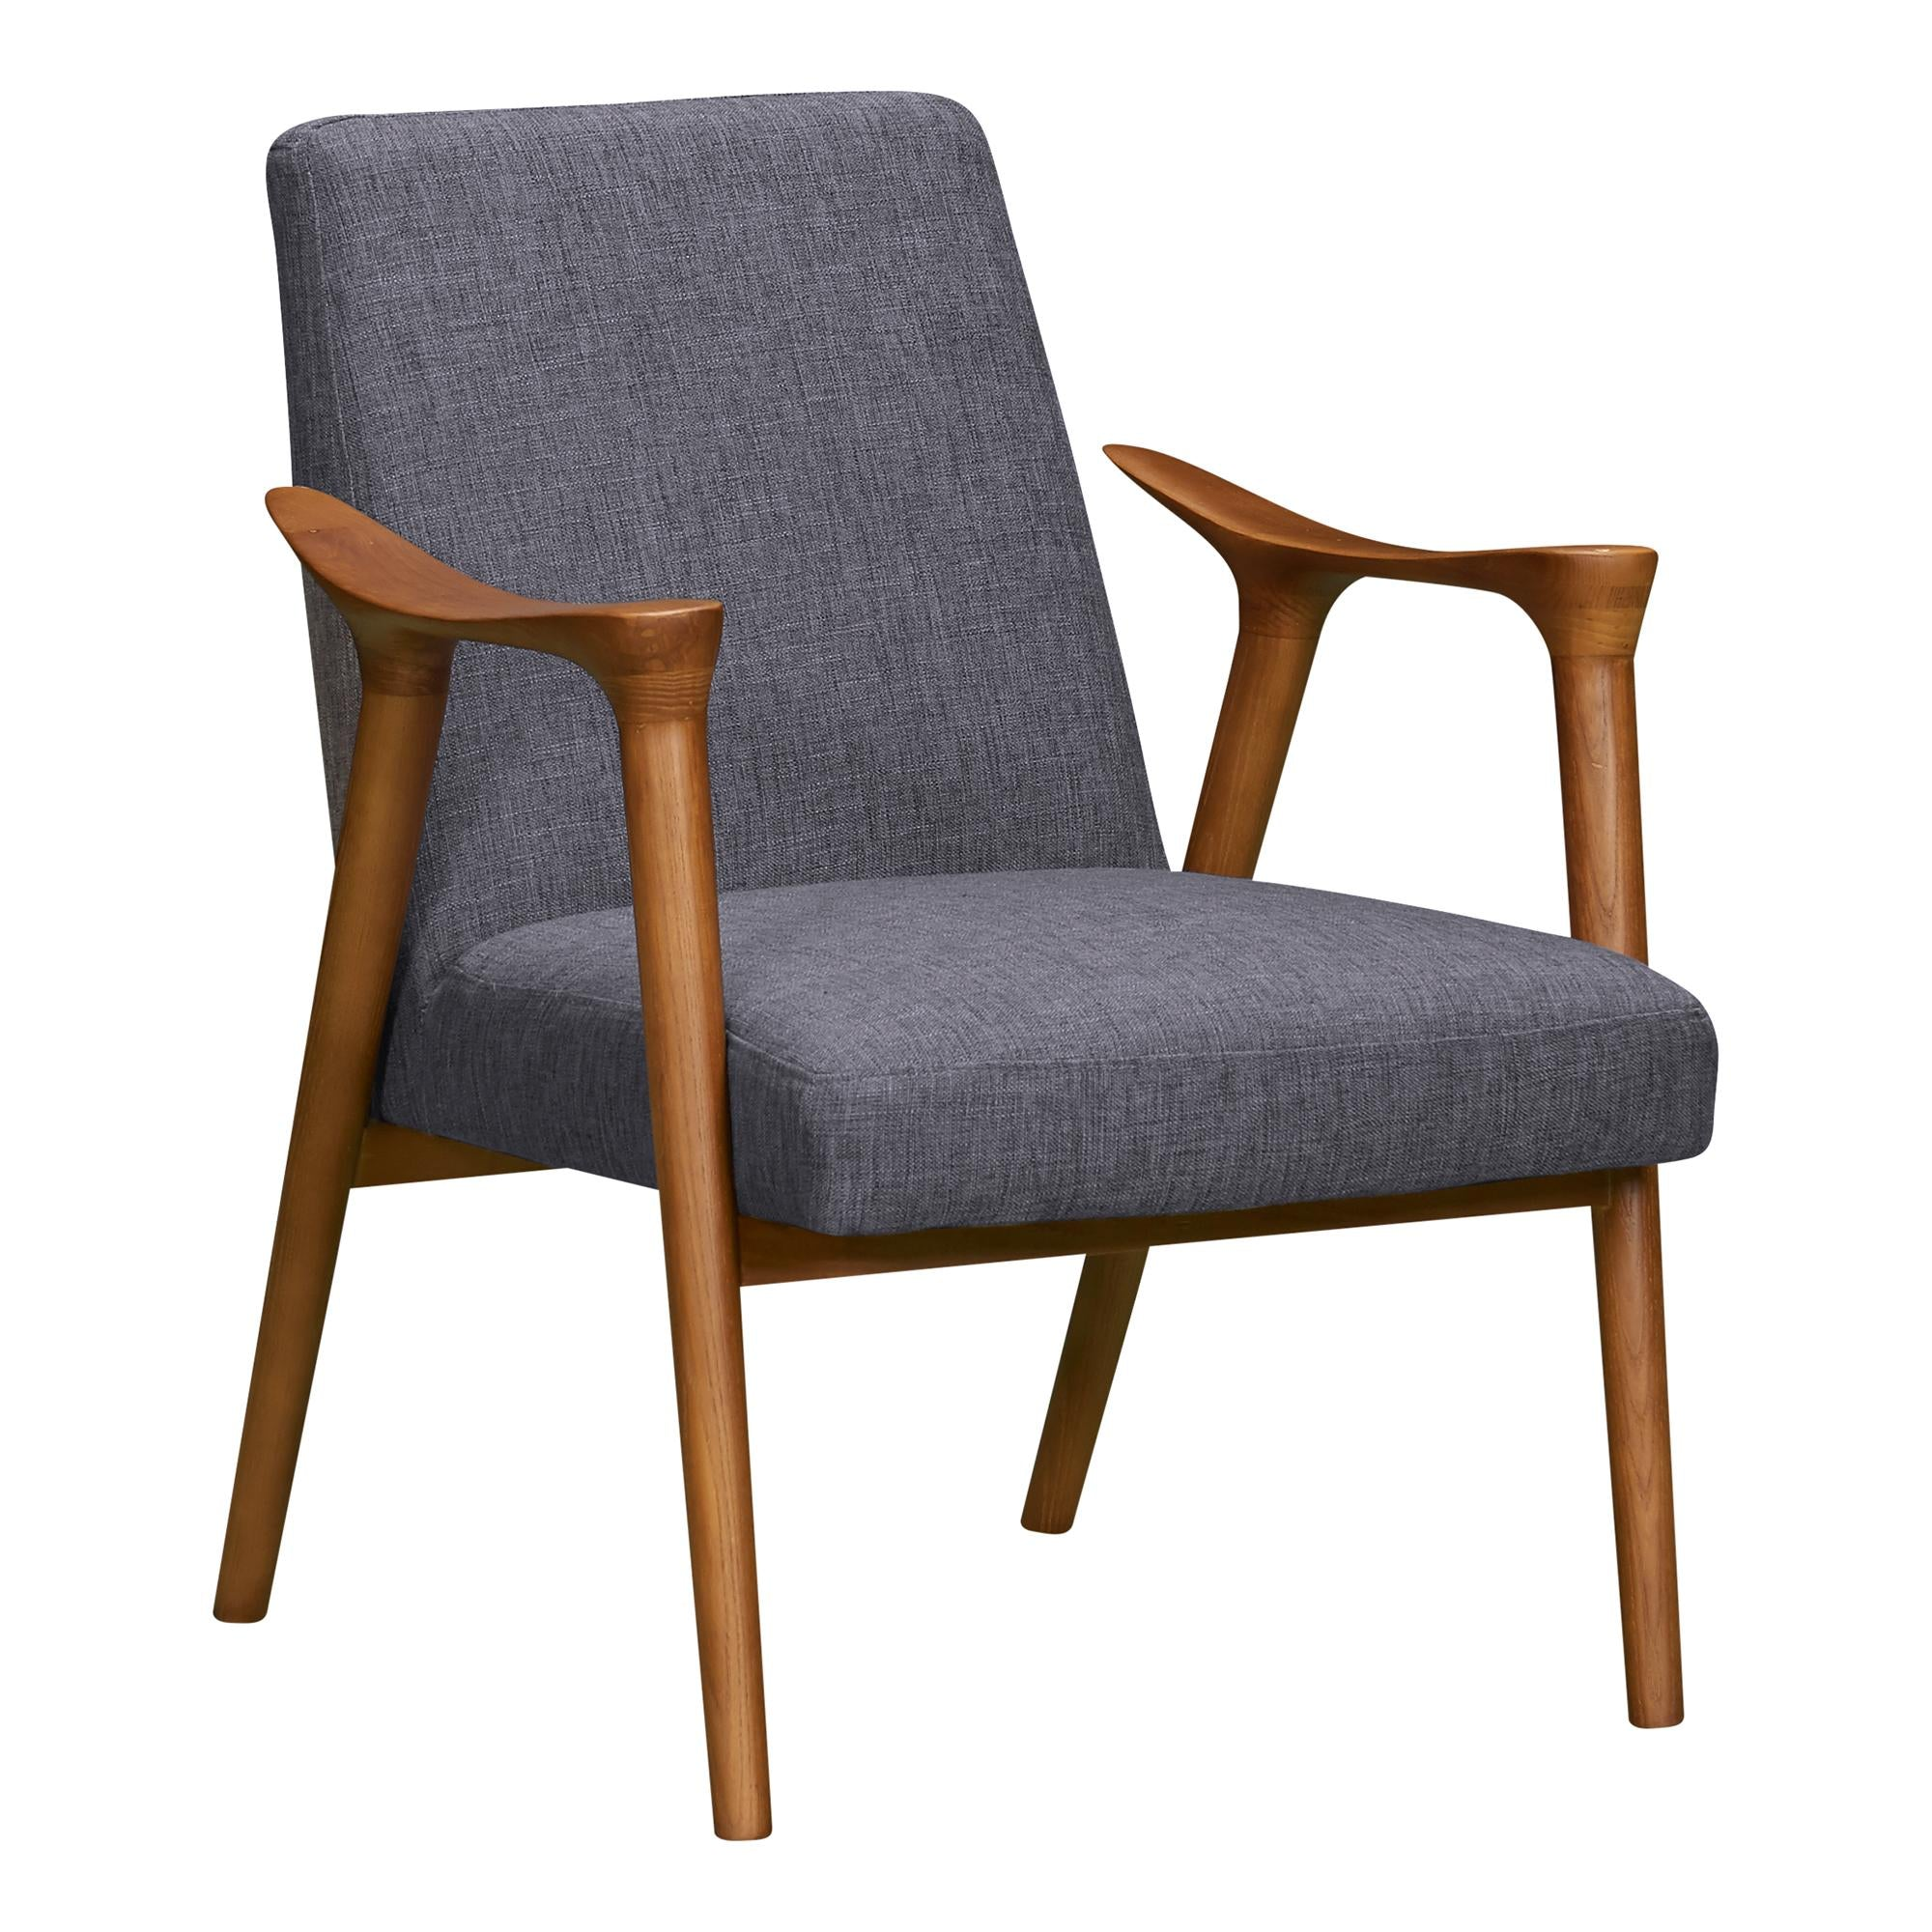 Nathan Mid-Century Accent Chair in Champagne Ash Wood Finish and Dark Grey Fabric